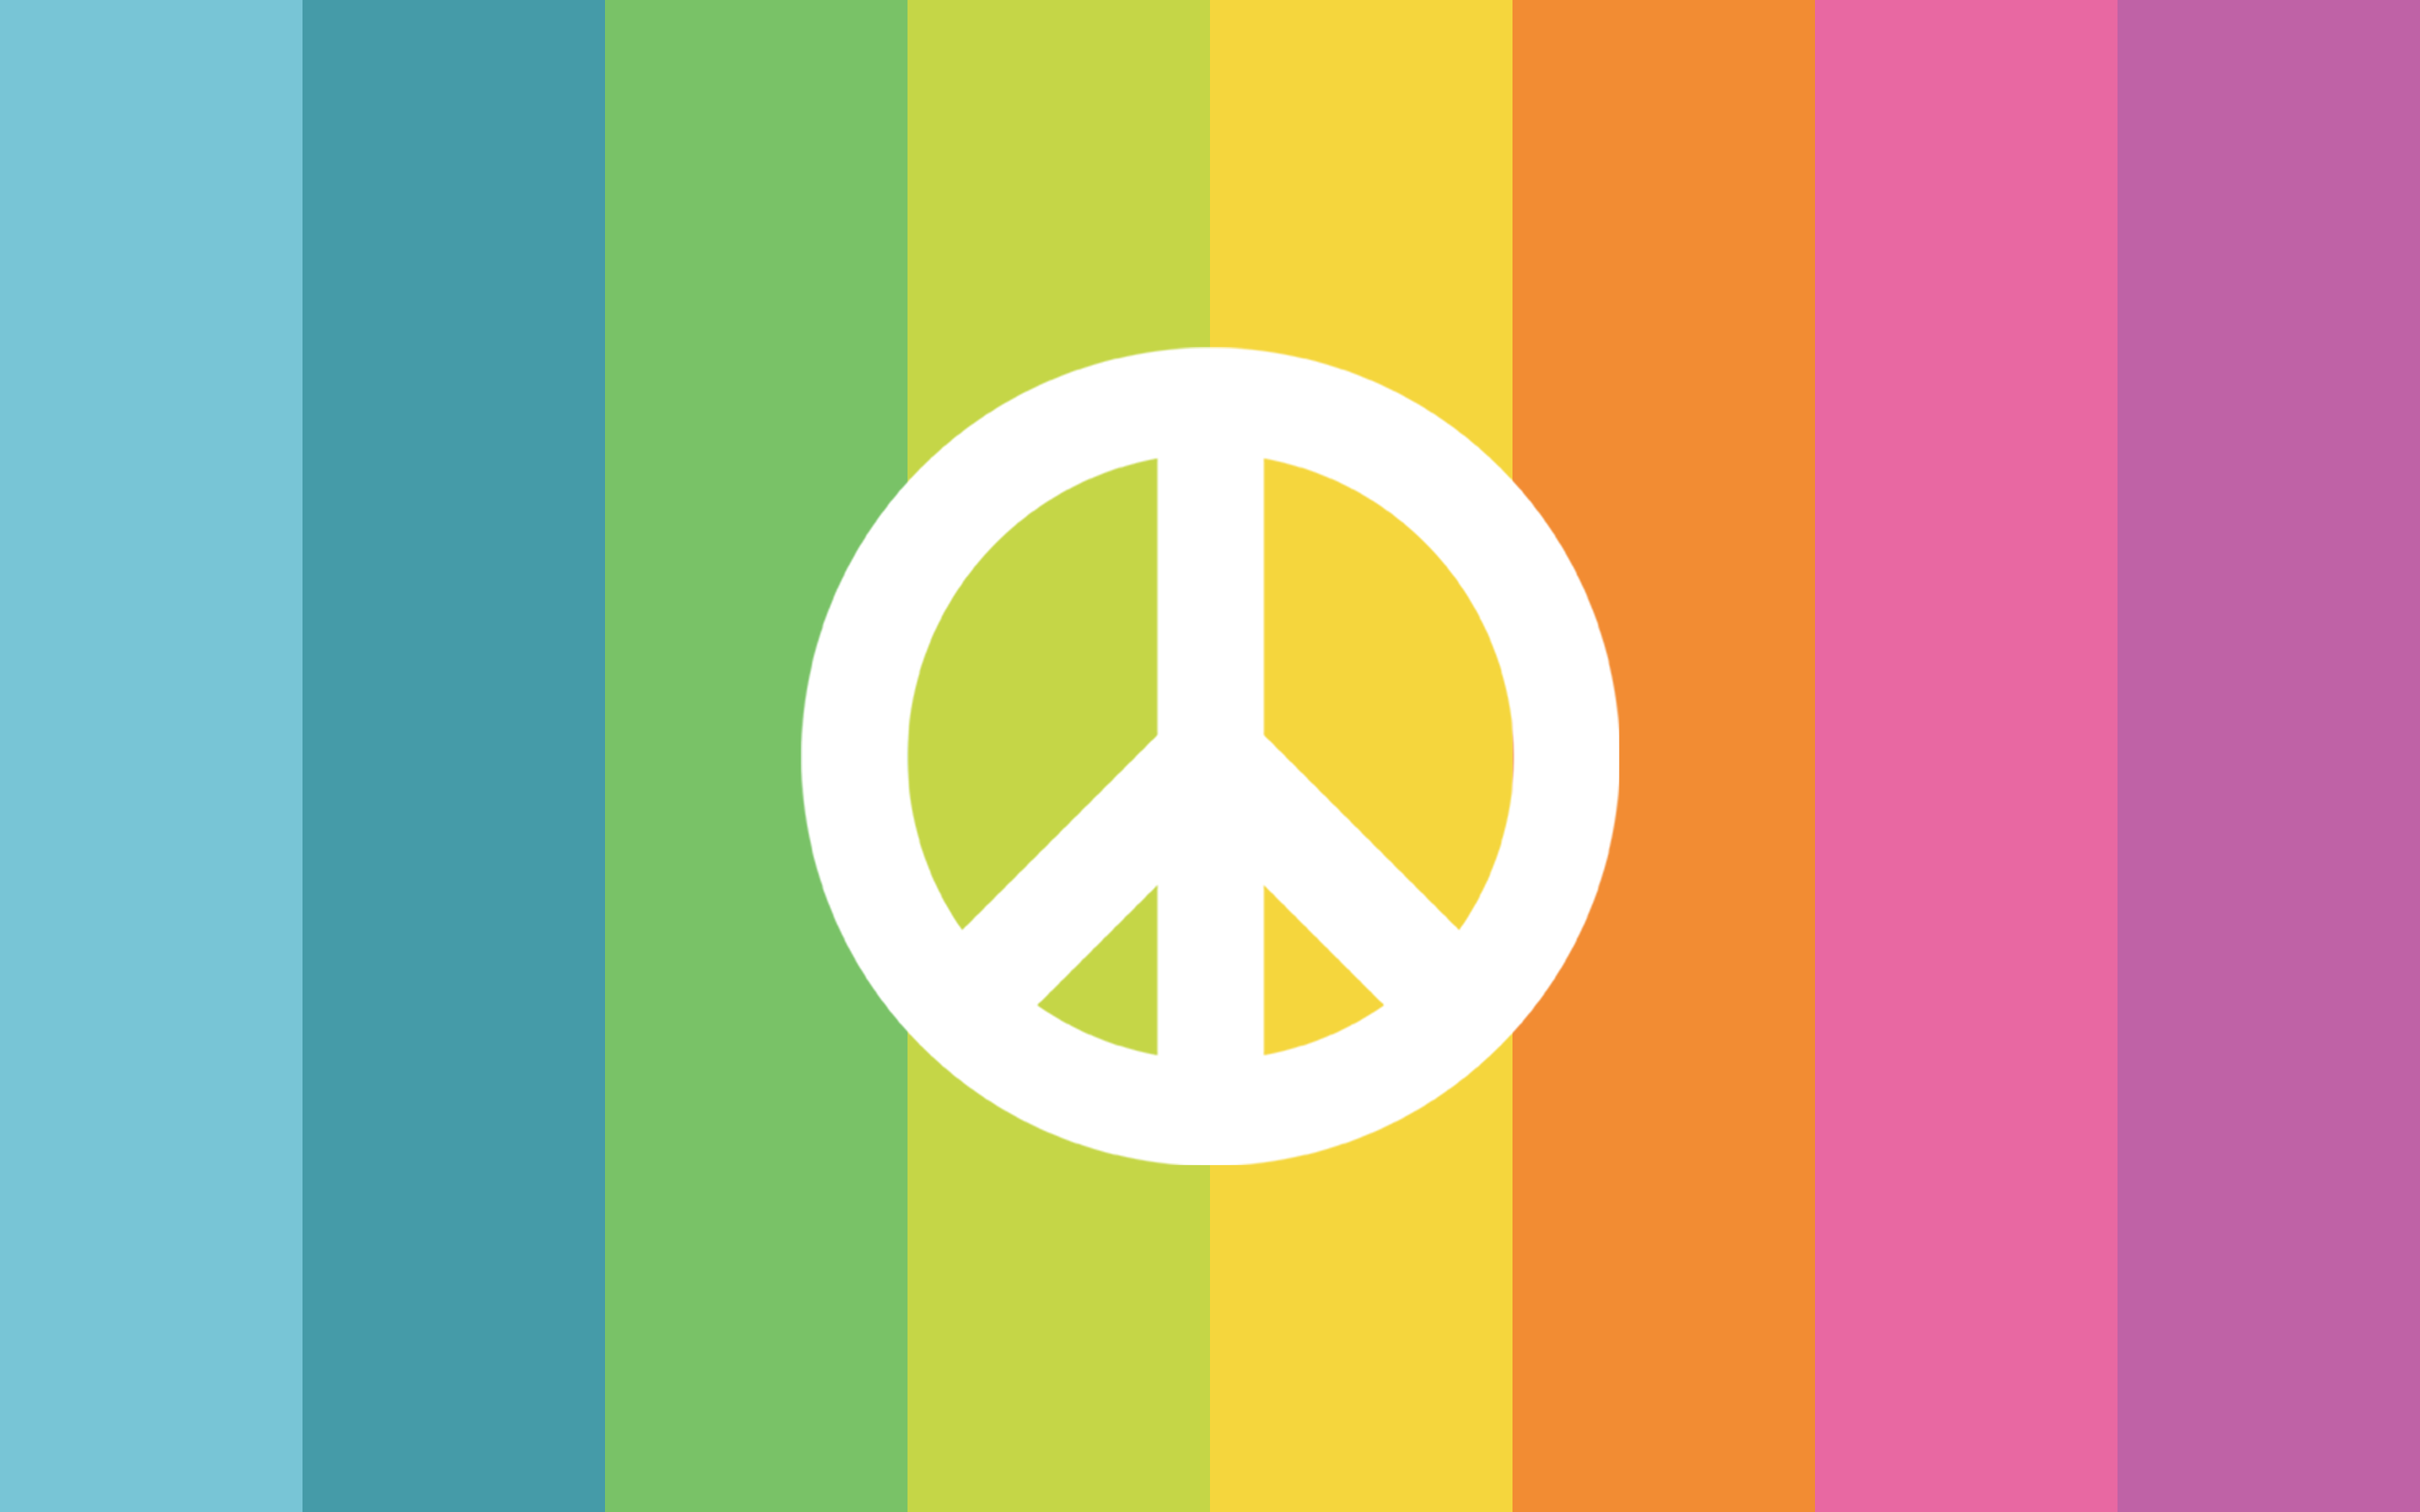 Peace Sign Backgrounds For Desktop 2560x1600